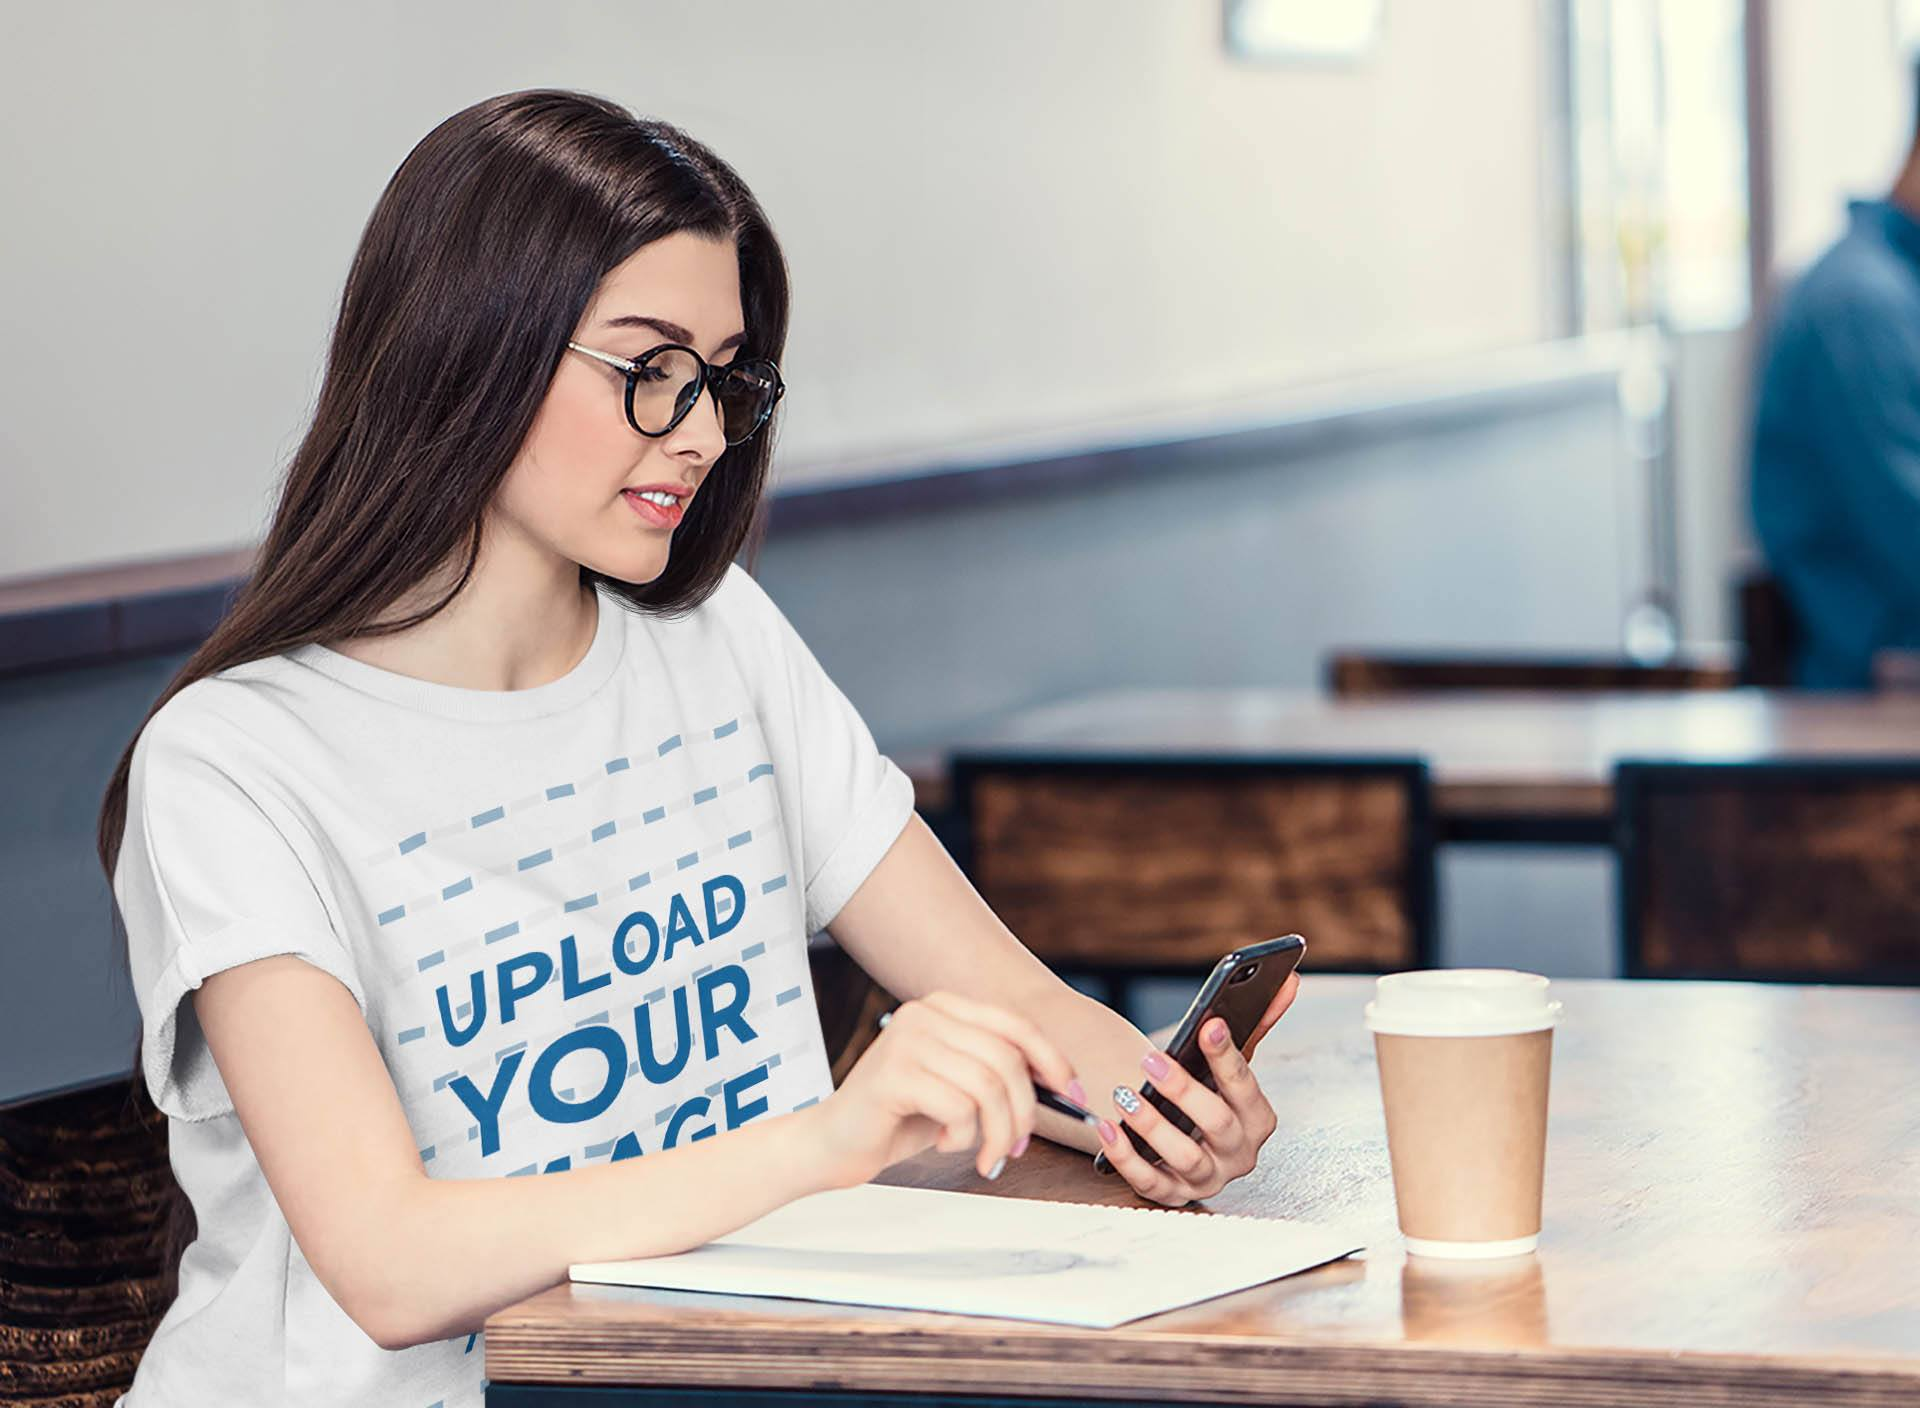 T-Shirt Mockup of a Woman with Glasses Studying at a Coffee Shop 35506-r-el2